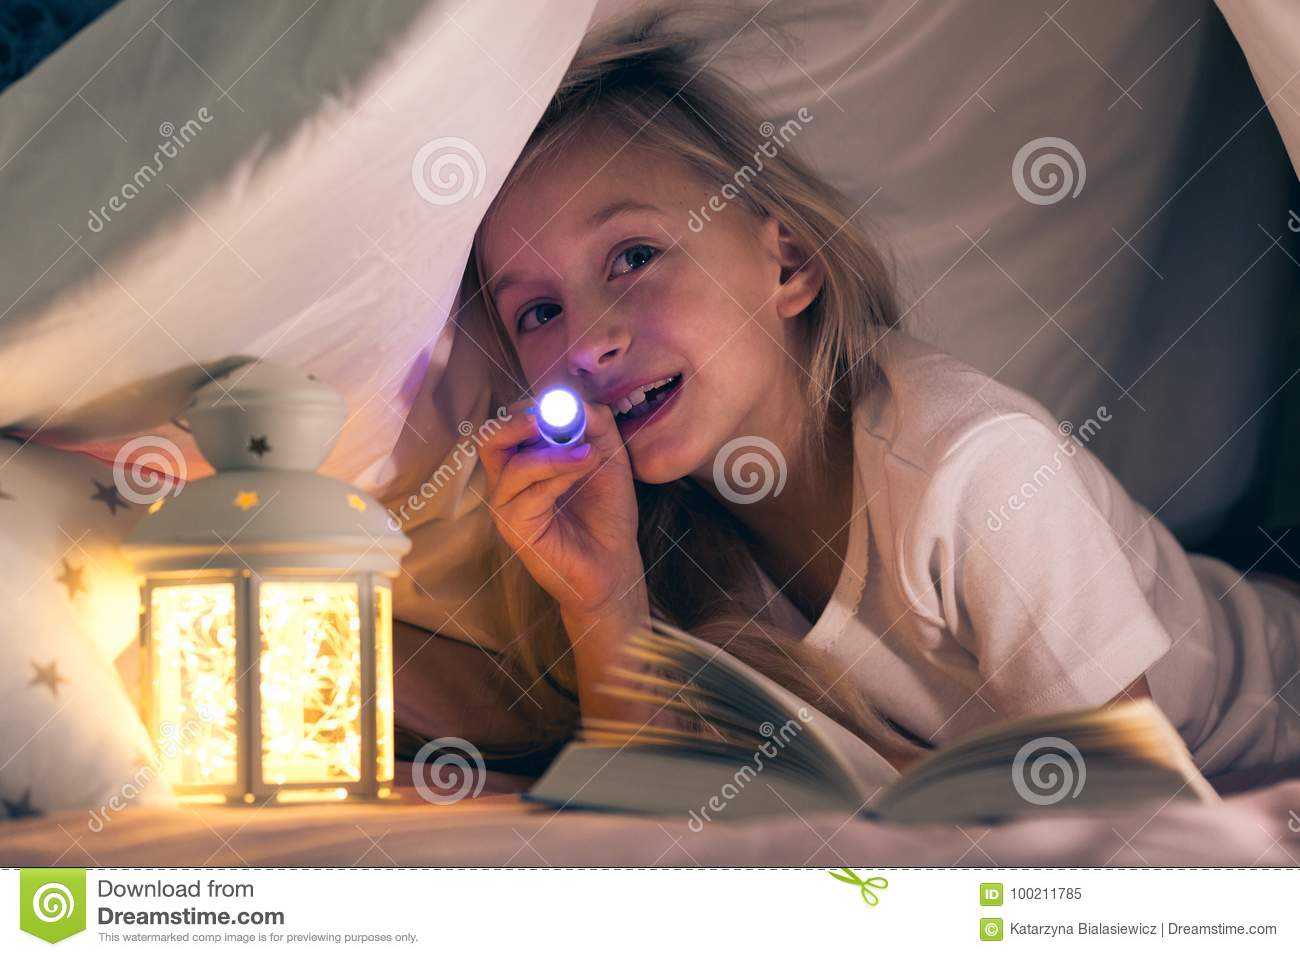 Child with flashlight in tent